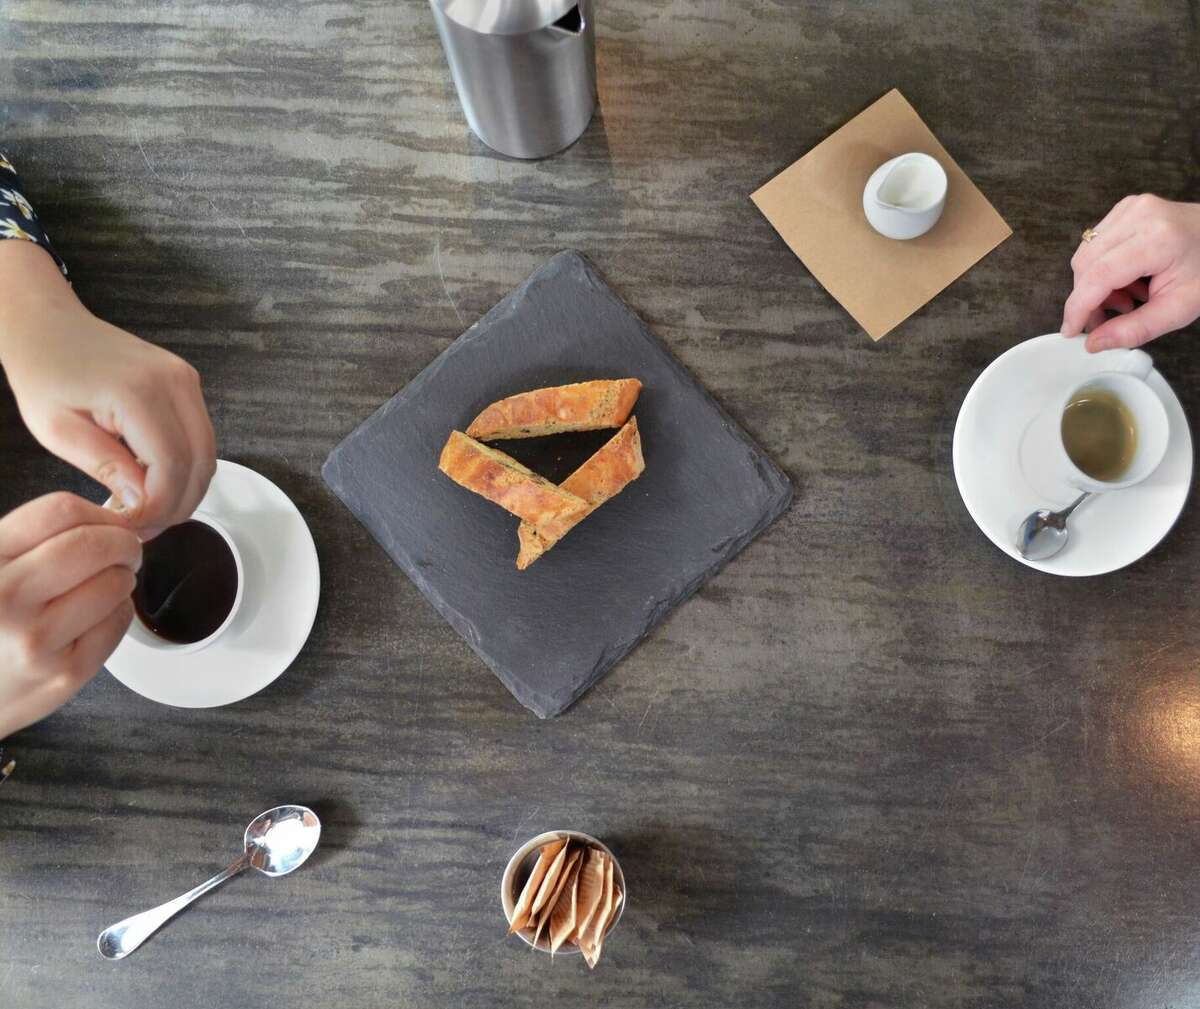 The Grove HoustonThe Grove will offer customers half off French press pots accompanied with free homemade biscotti. Small size press pots serve 2.5 cups of coffee for $5 and large press pots serve 5 cups of coffee for $9.